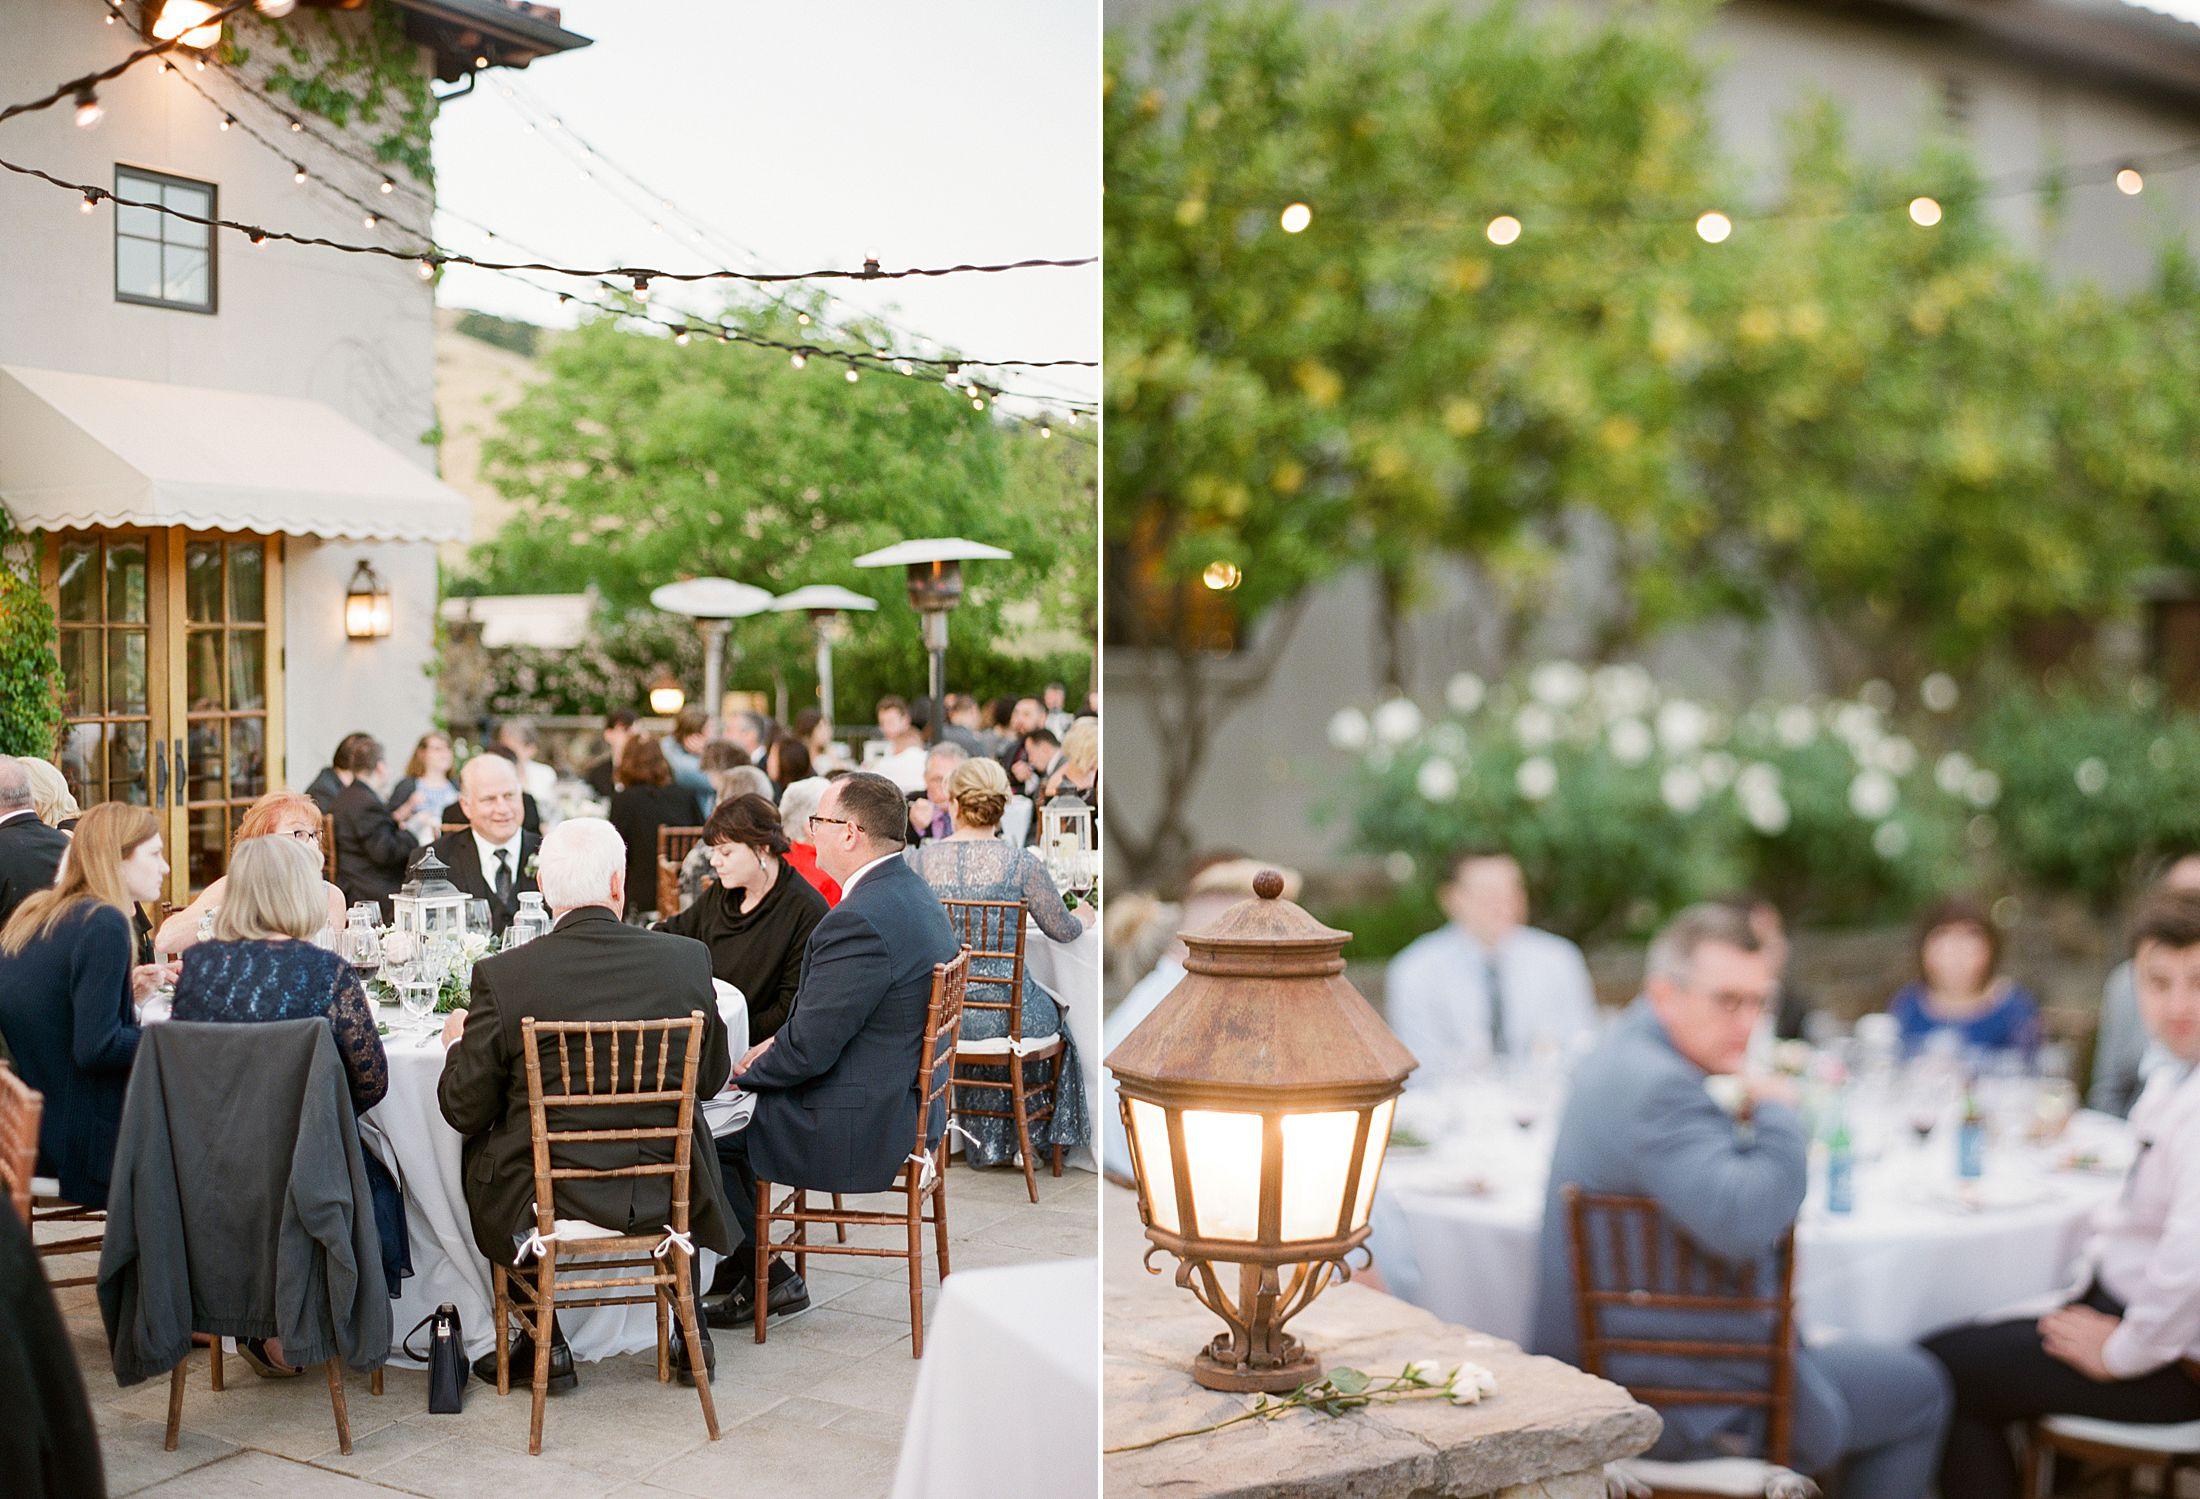 Clos LaChance Winery Wedding - Ashley Baumgartner - Kat & Kurt - Morgan Hill Wedding - Winery Wedding - Bay Area Photographer - Sacramento Wedding Photographer_0077.jpg